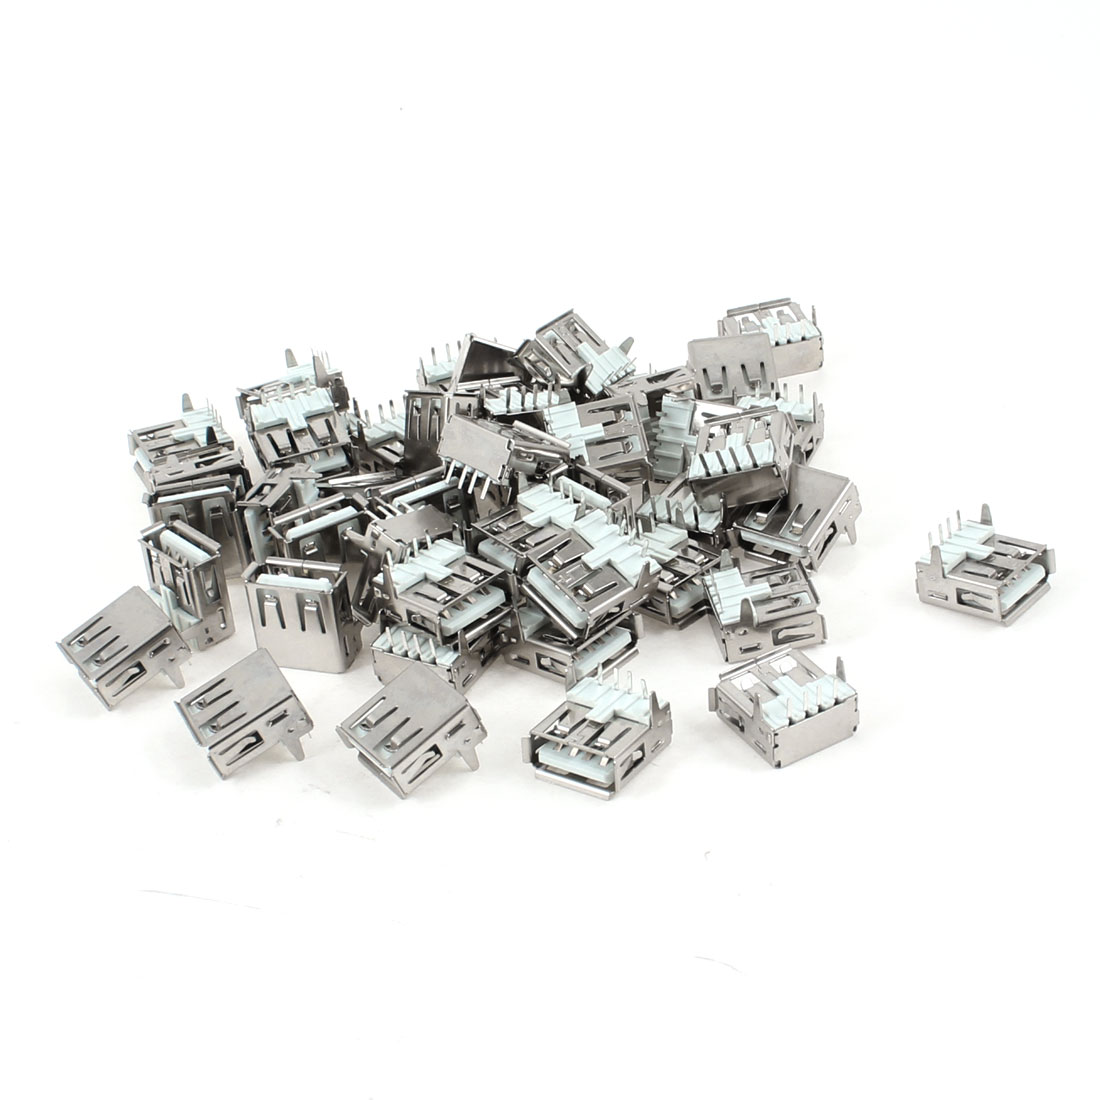 50 Pcs USB 2.0 Type A 90 Degree 4-Pin DIP Female Jack Socket Connector